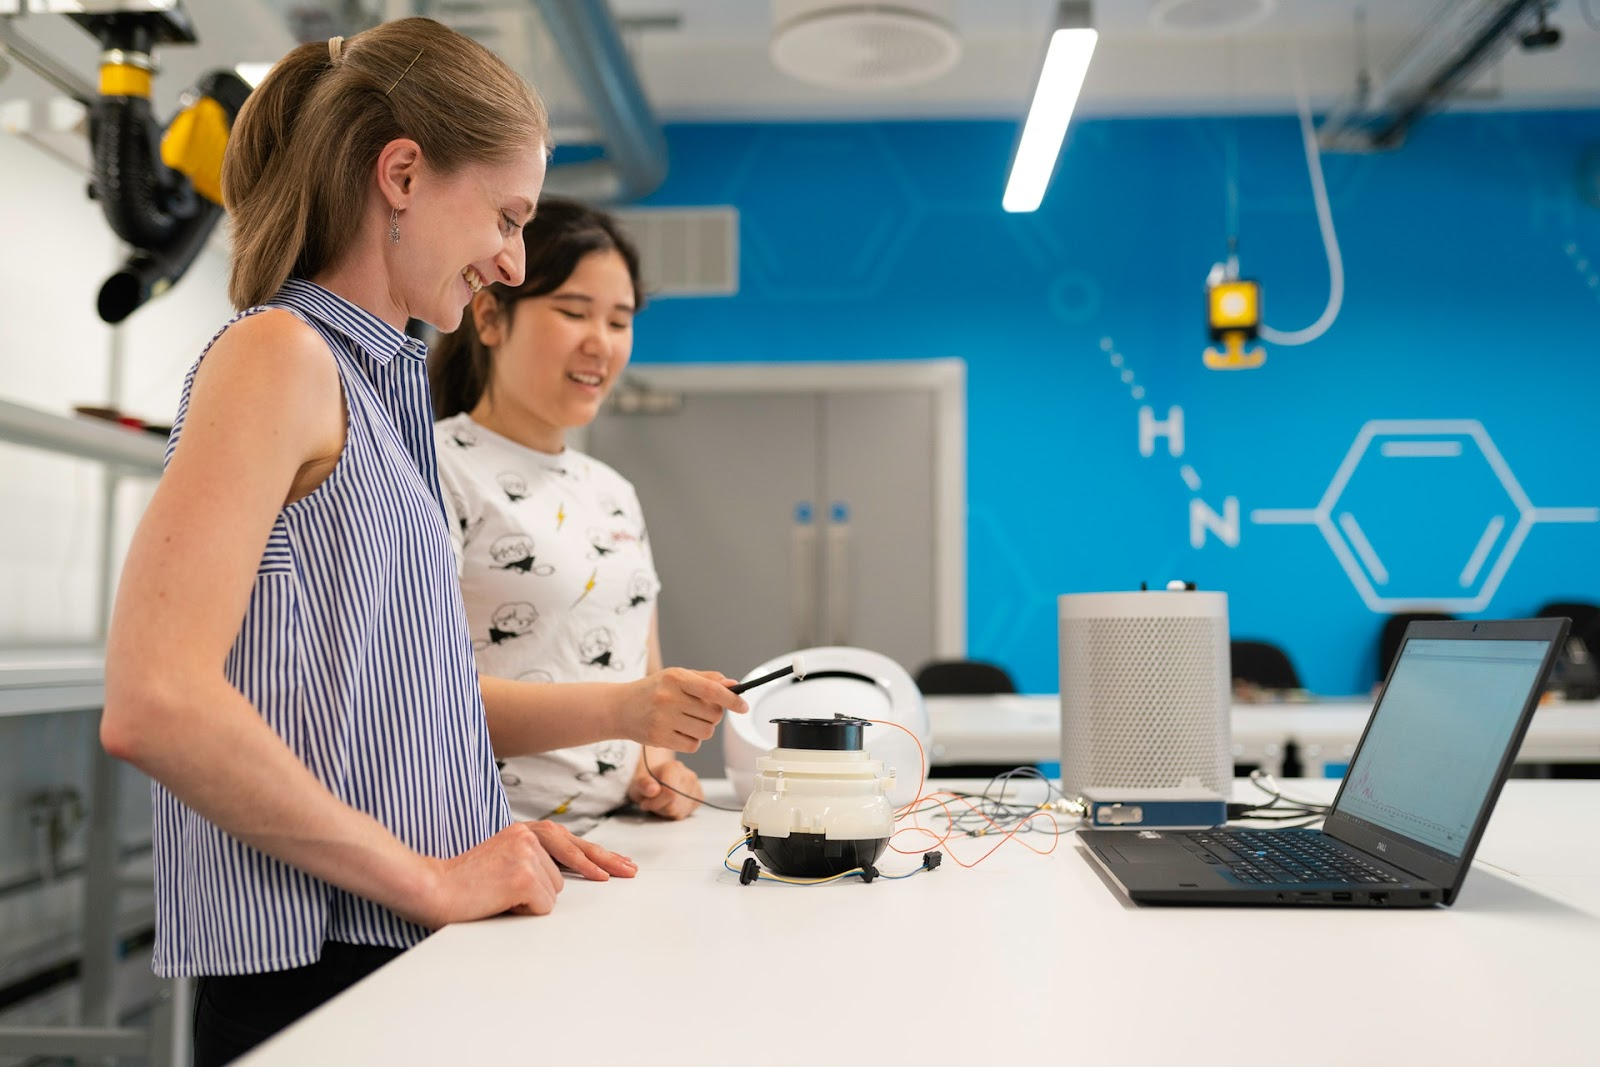 Two young girls stand in a <mark><mark><mark>STEM classroom</mark></mark></mark> in front of a white table smiling as they code a <mark><mark><mark>robot</mark></mark></mark> with a laptop.